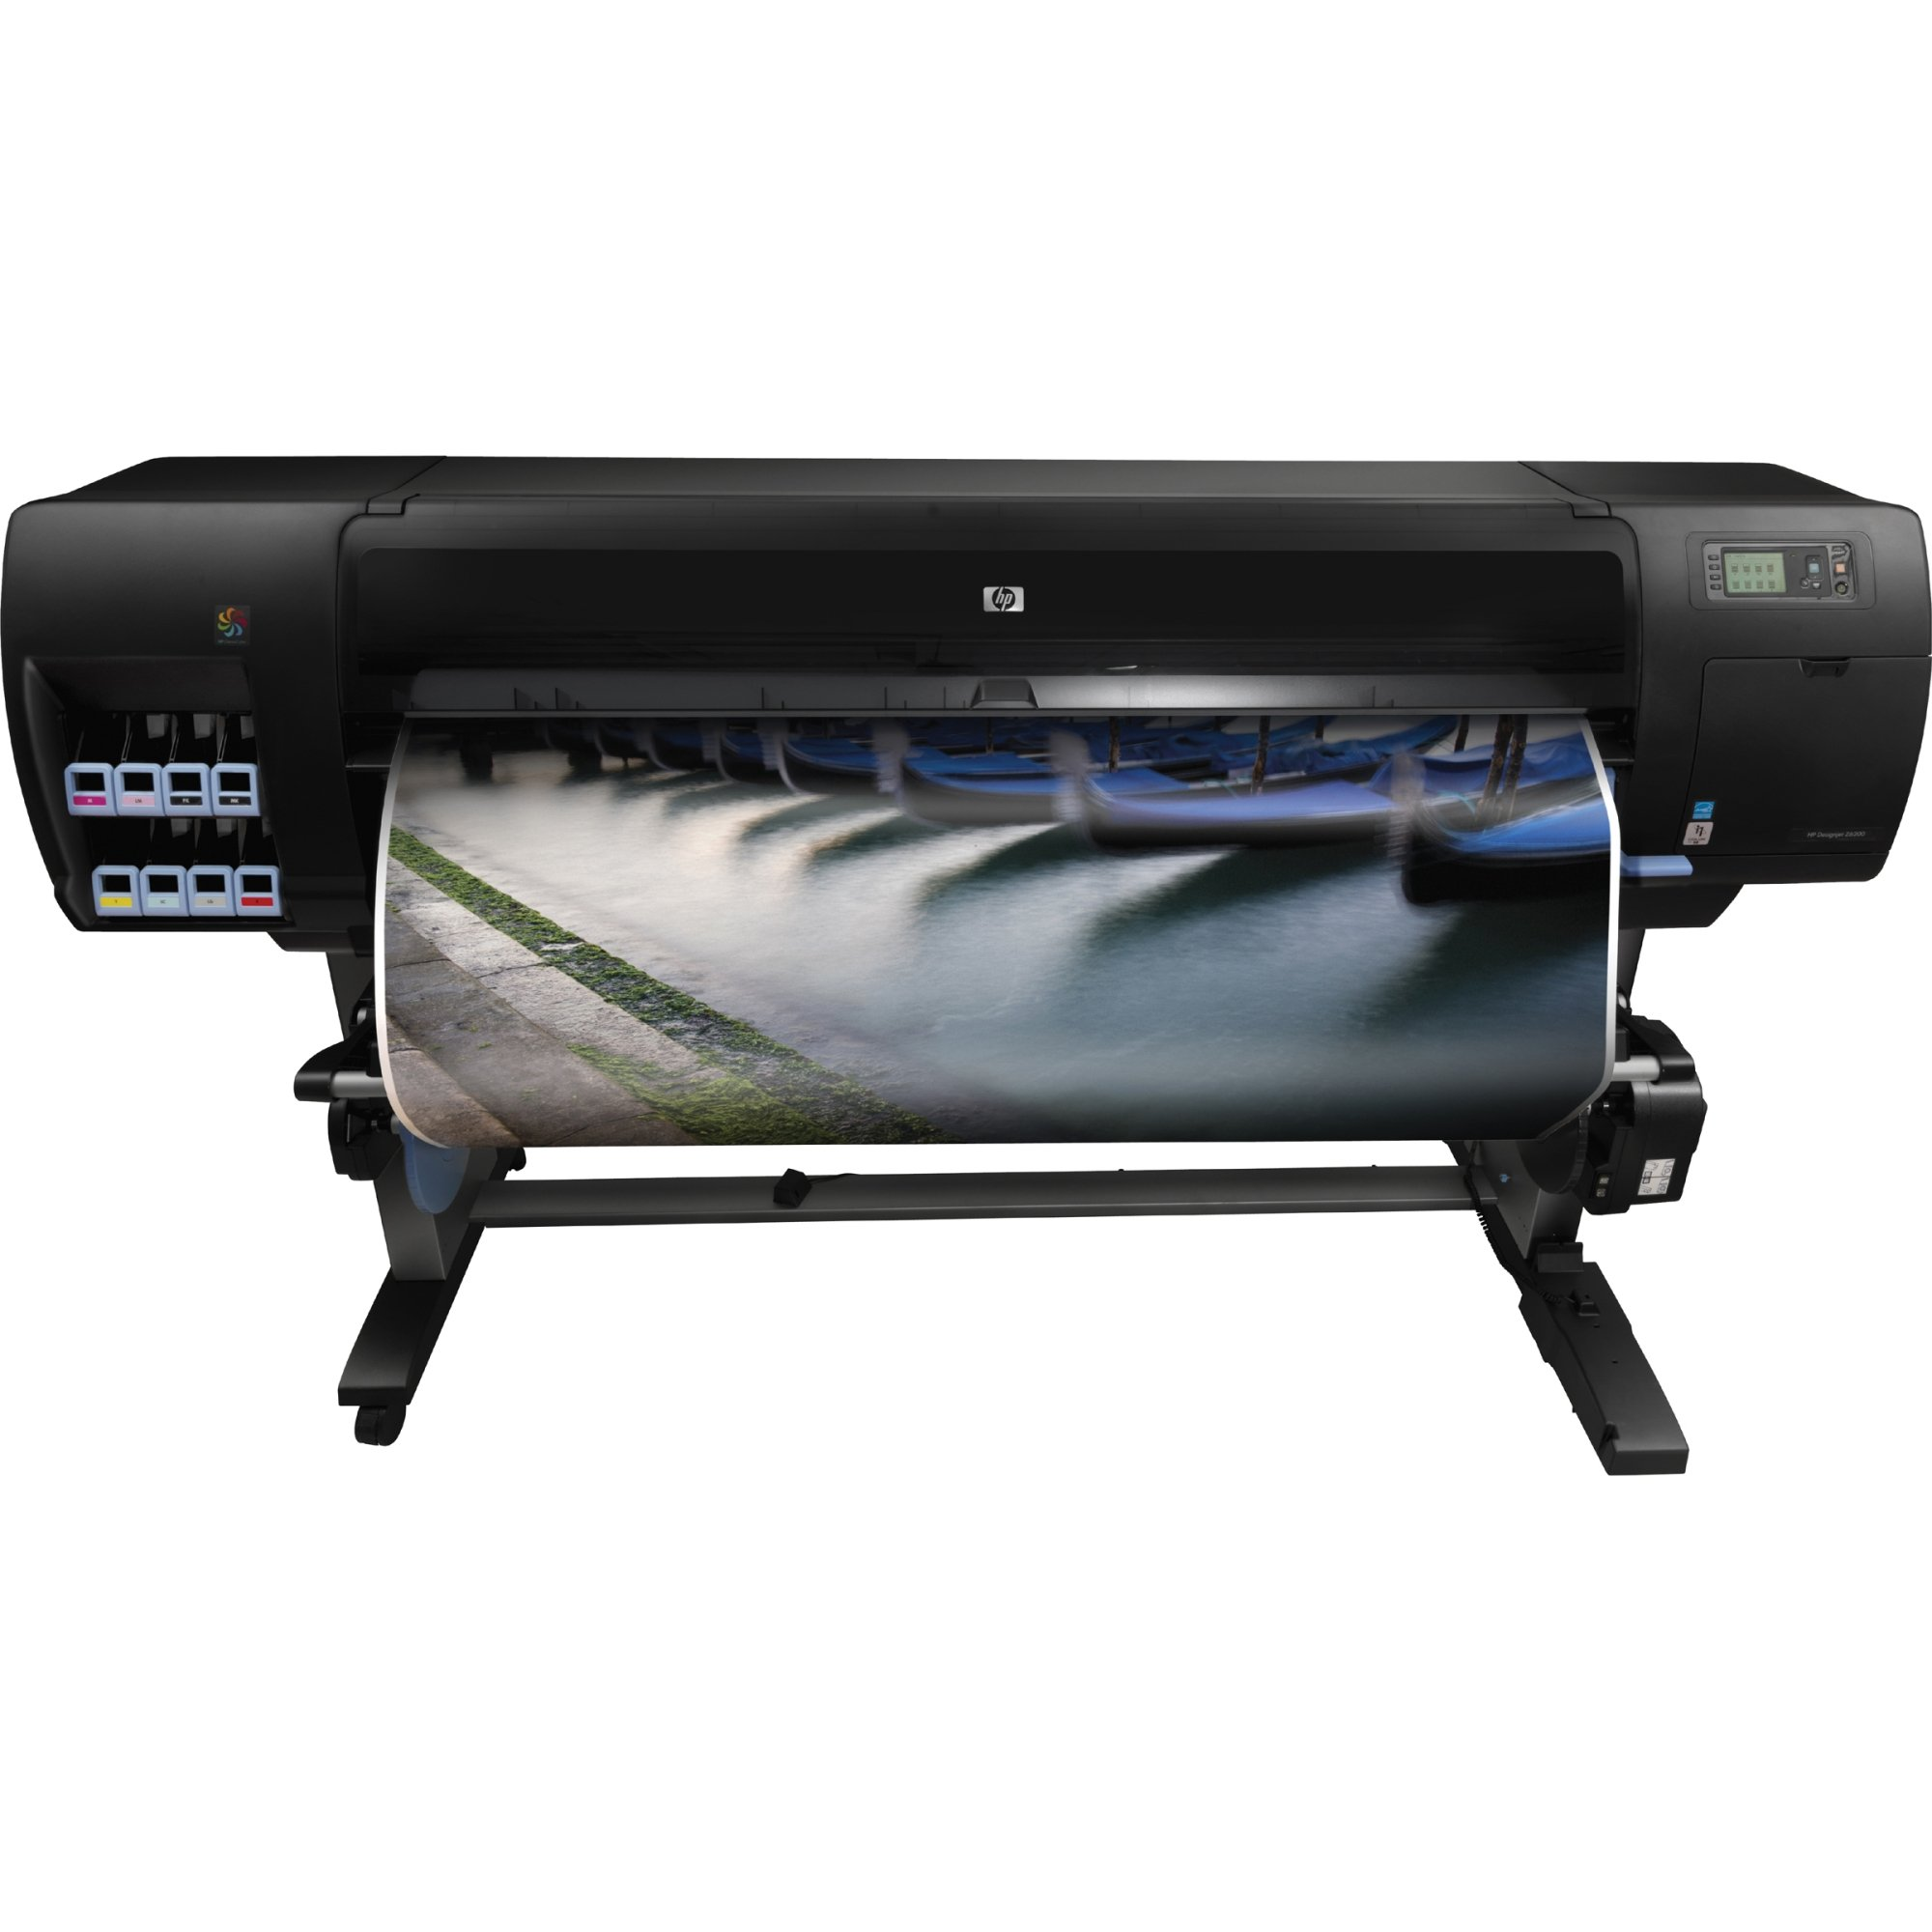 HP Designjet Z6200 42-in Photo Printer - Impresora de gran formato (2.1 min/p, 3.2 min/p, HP-GL/2, HP-RTL, Cian claro, Magenta claro, magenta, Negro mate, photo black, Amarillo, 17 cm, 775 ml): Amazon.es: